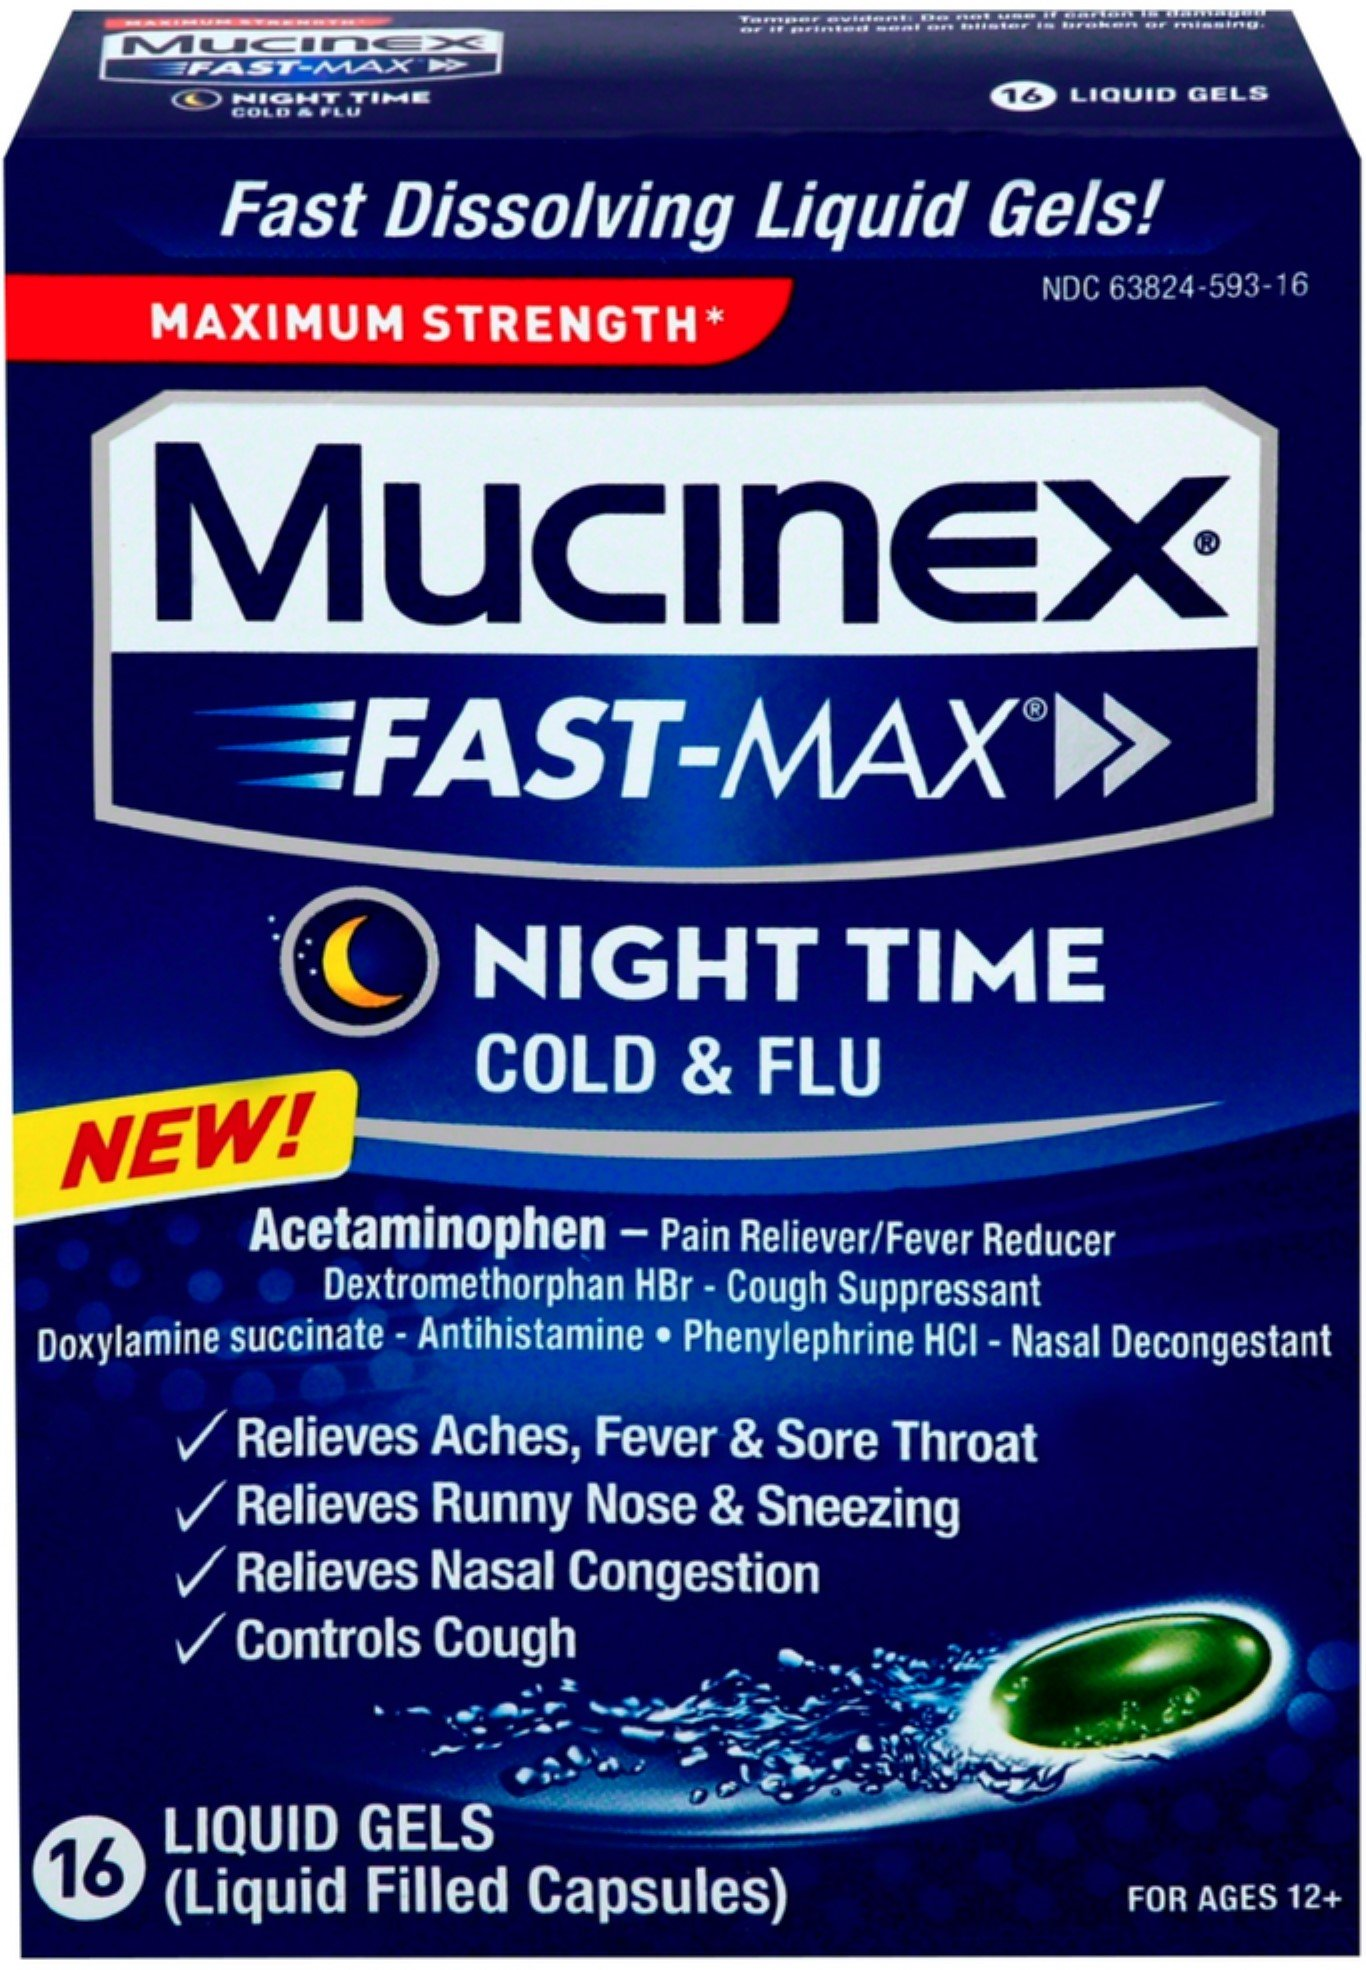 Mucinex Fast-Max Night Time Cold & Flu Liquid Gels 16 ea (12 Pack) by Mucinex